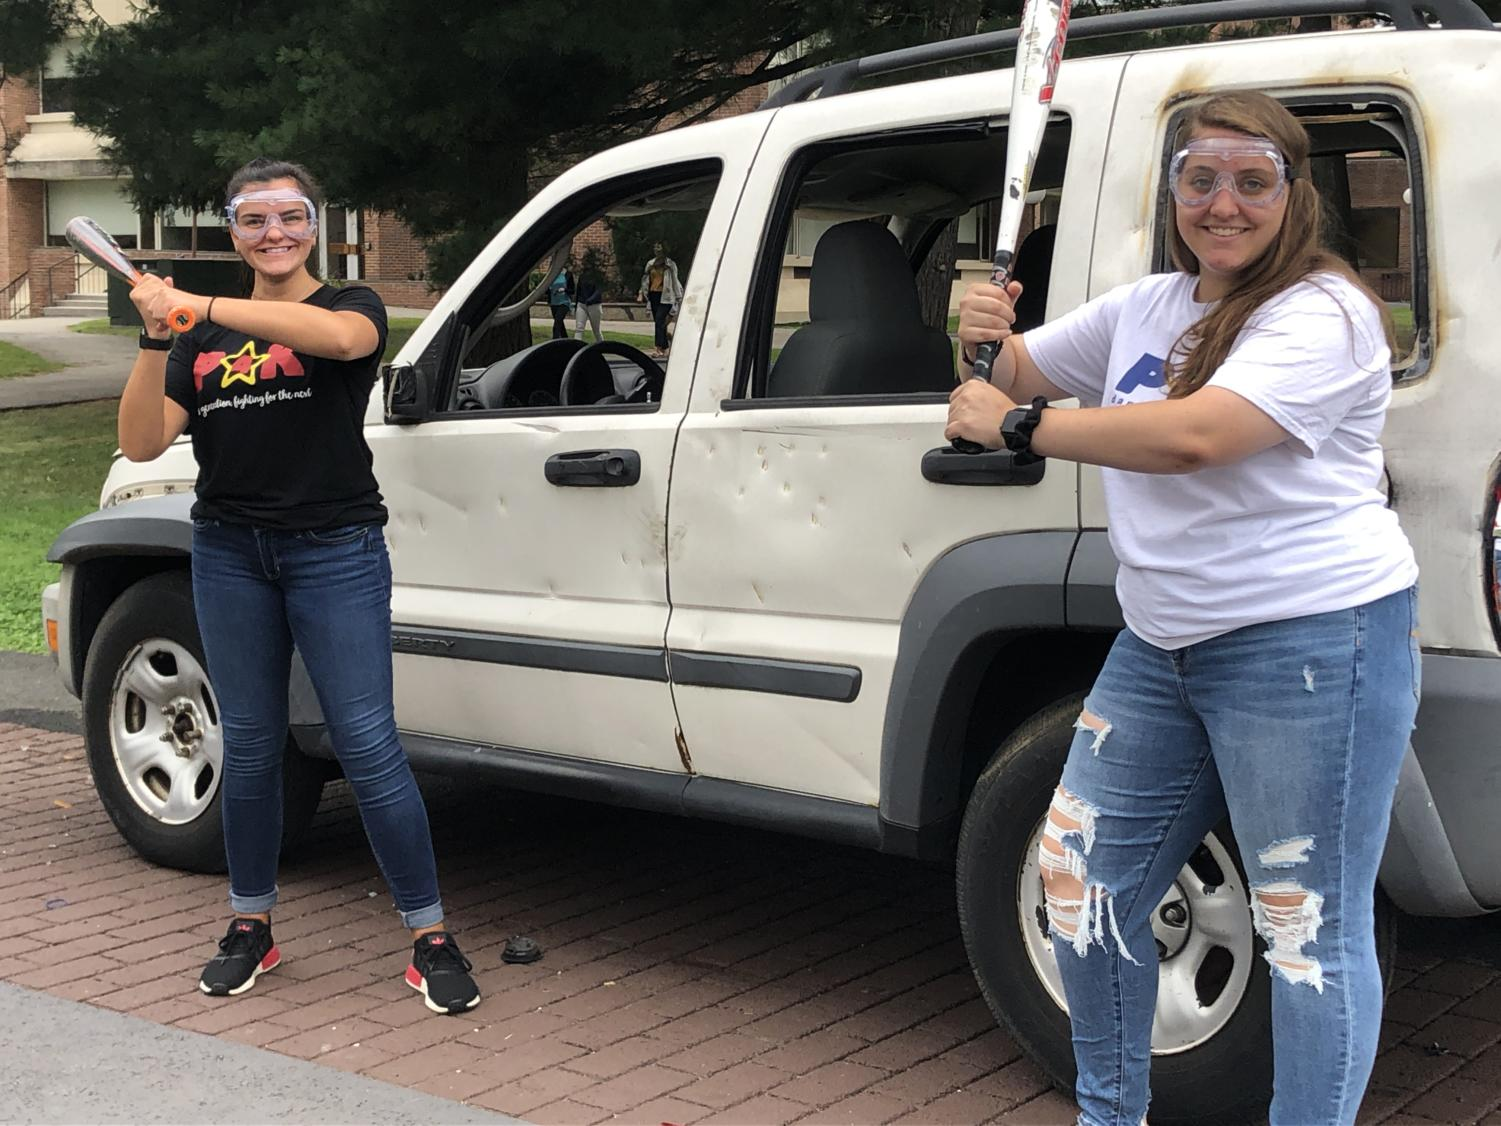 Executive Director, Christina Fonte and Communications Director, Shannon Kelly revealed that the car smashing was not a representative of anything, but rather was a fun way to kick off the school year.